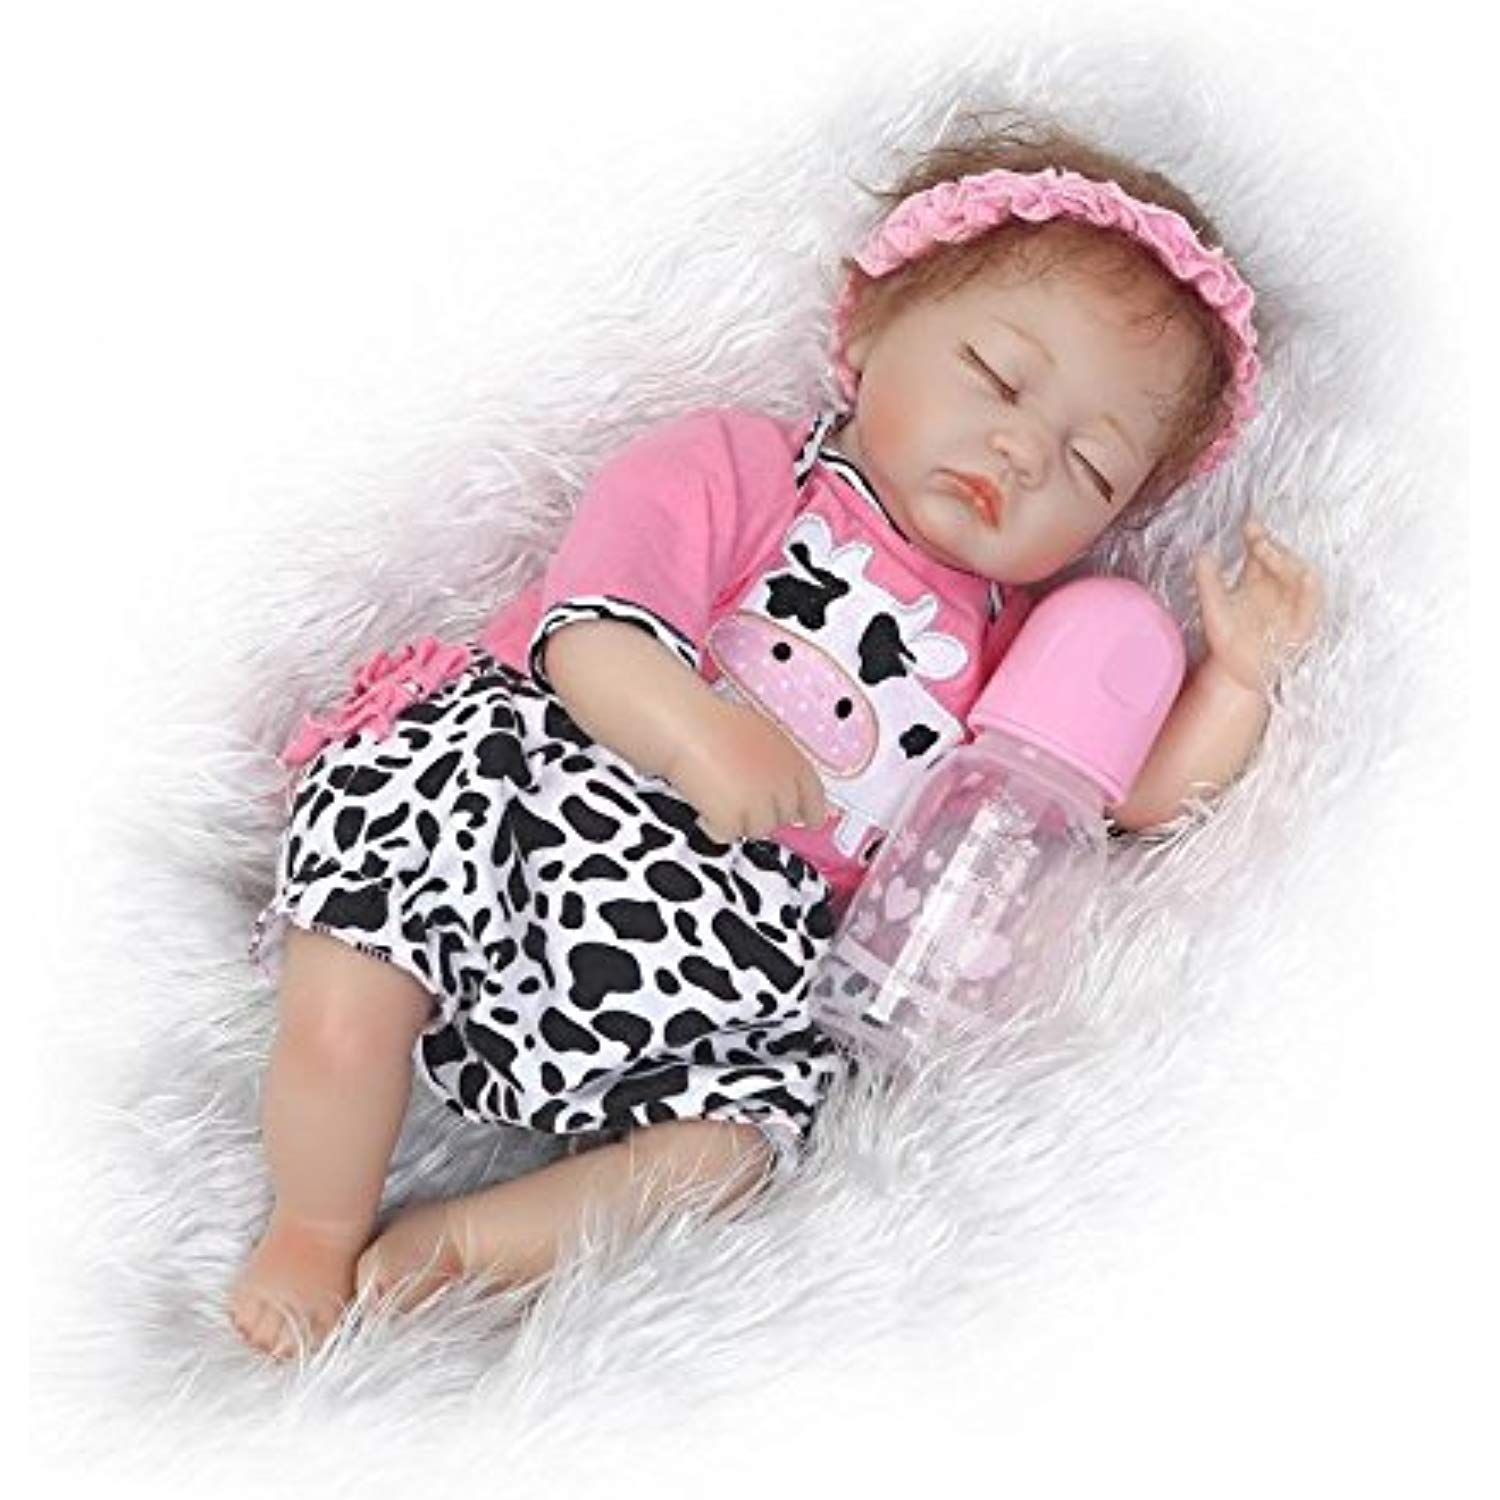 22 Inch Reborn Baby Girl Dolls Reborn Toddler Doll Soft Vinyl Silicone Real Life Like Looking Newborn Dolls Toy Reborn Babies